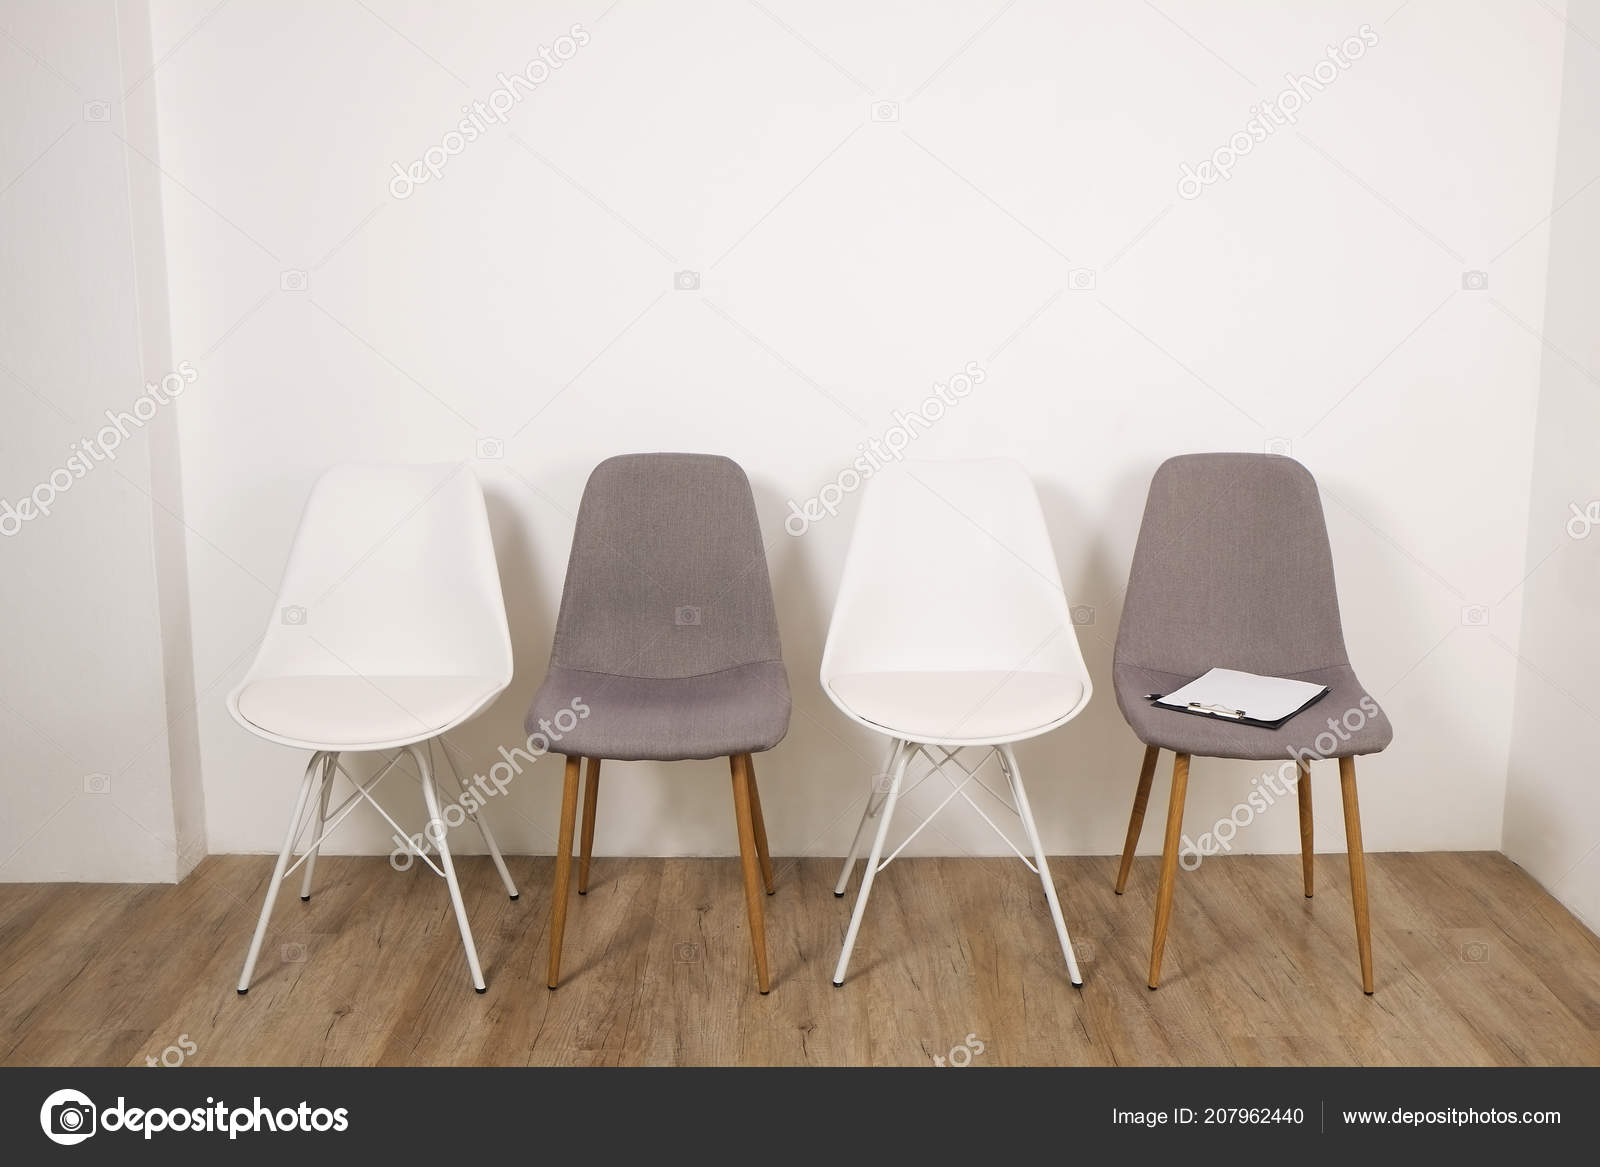 Multiple Loft Style Empty Chairs Standing Row Wooden Floor Counselor U2014  Stock Photo